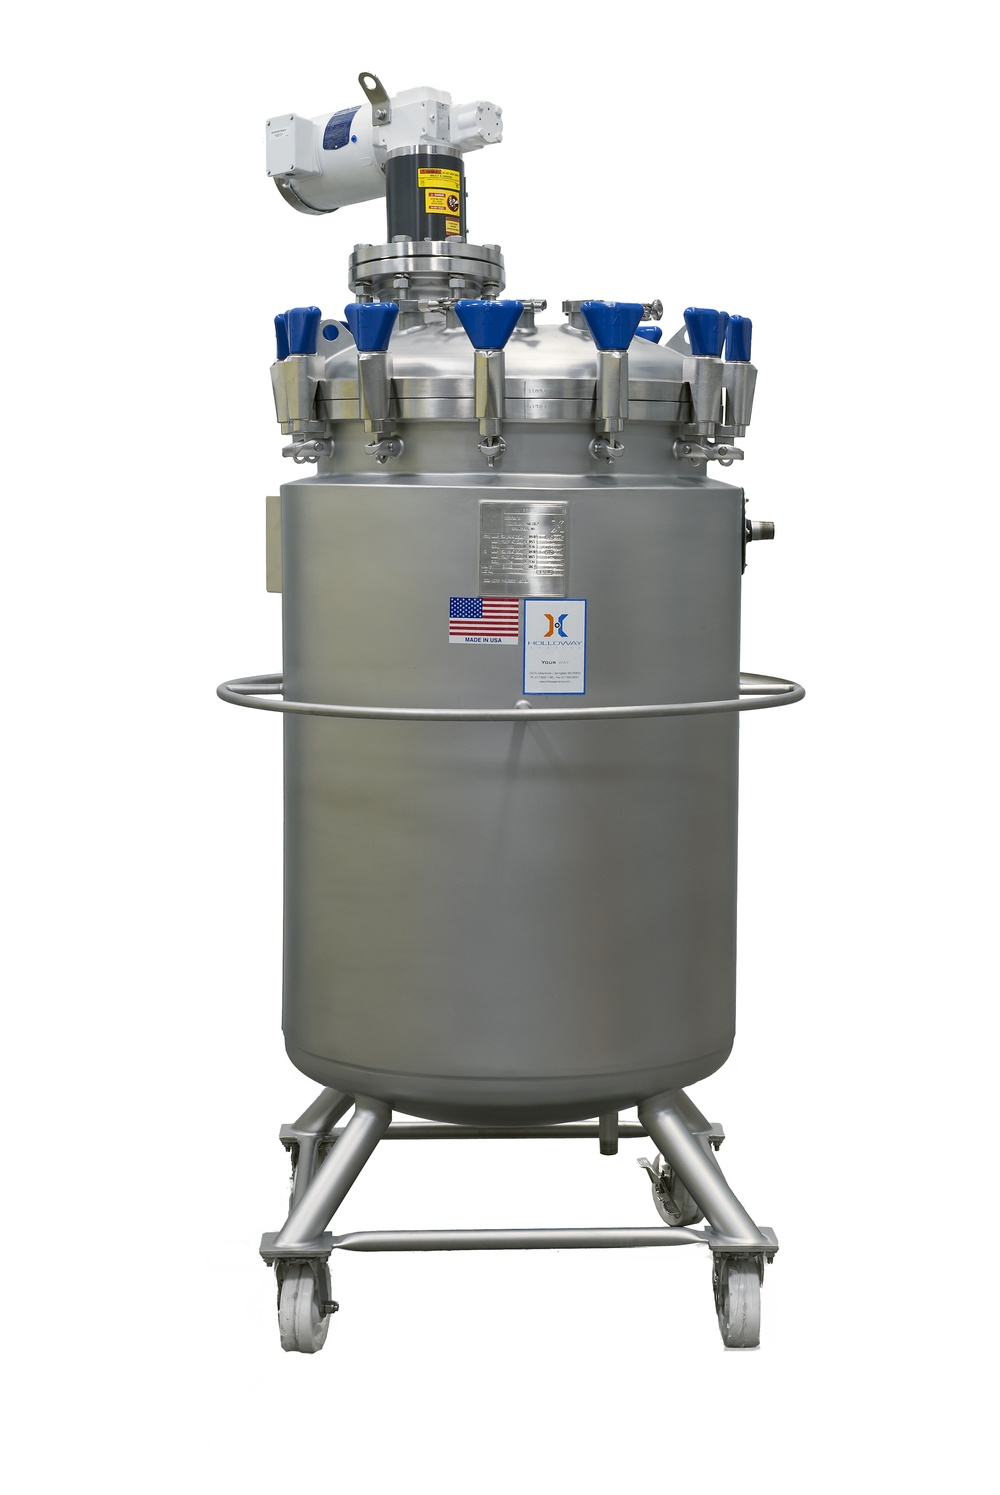 This mix tank features portable mixing vessel design.